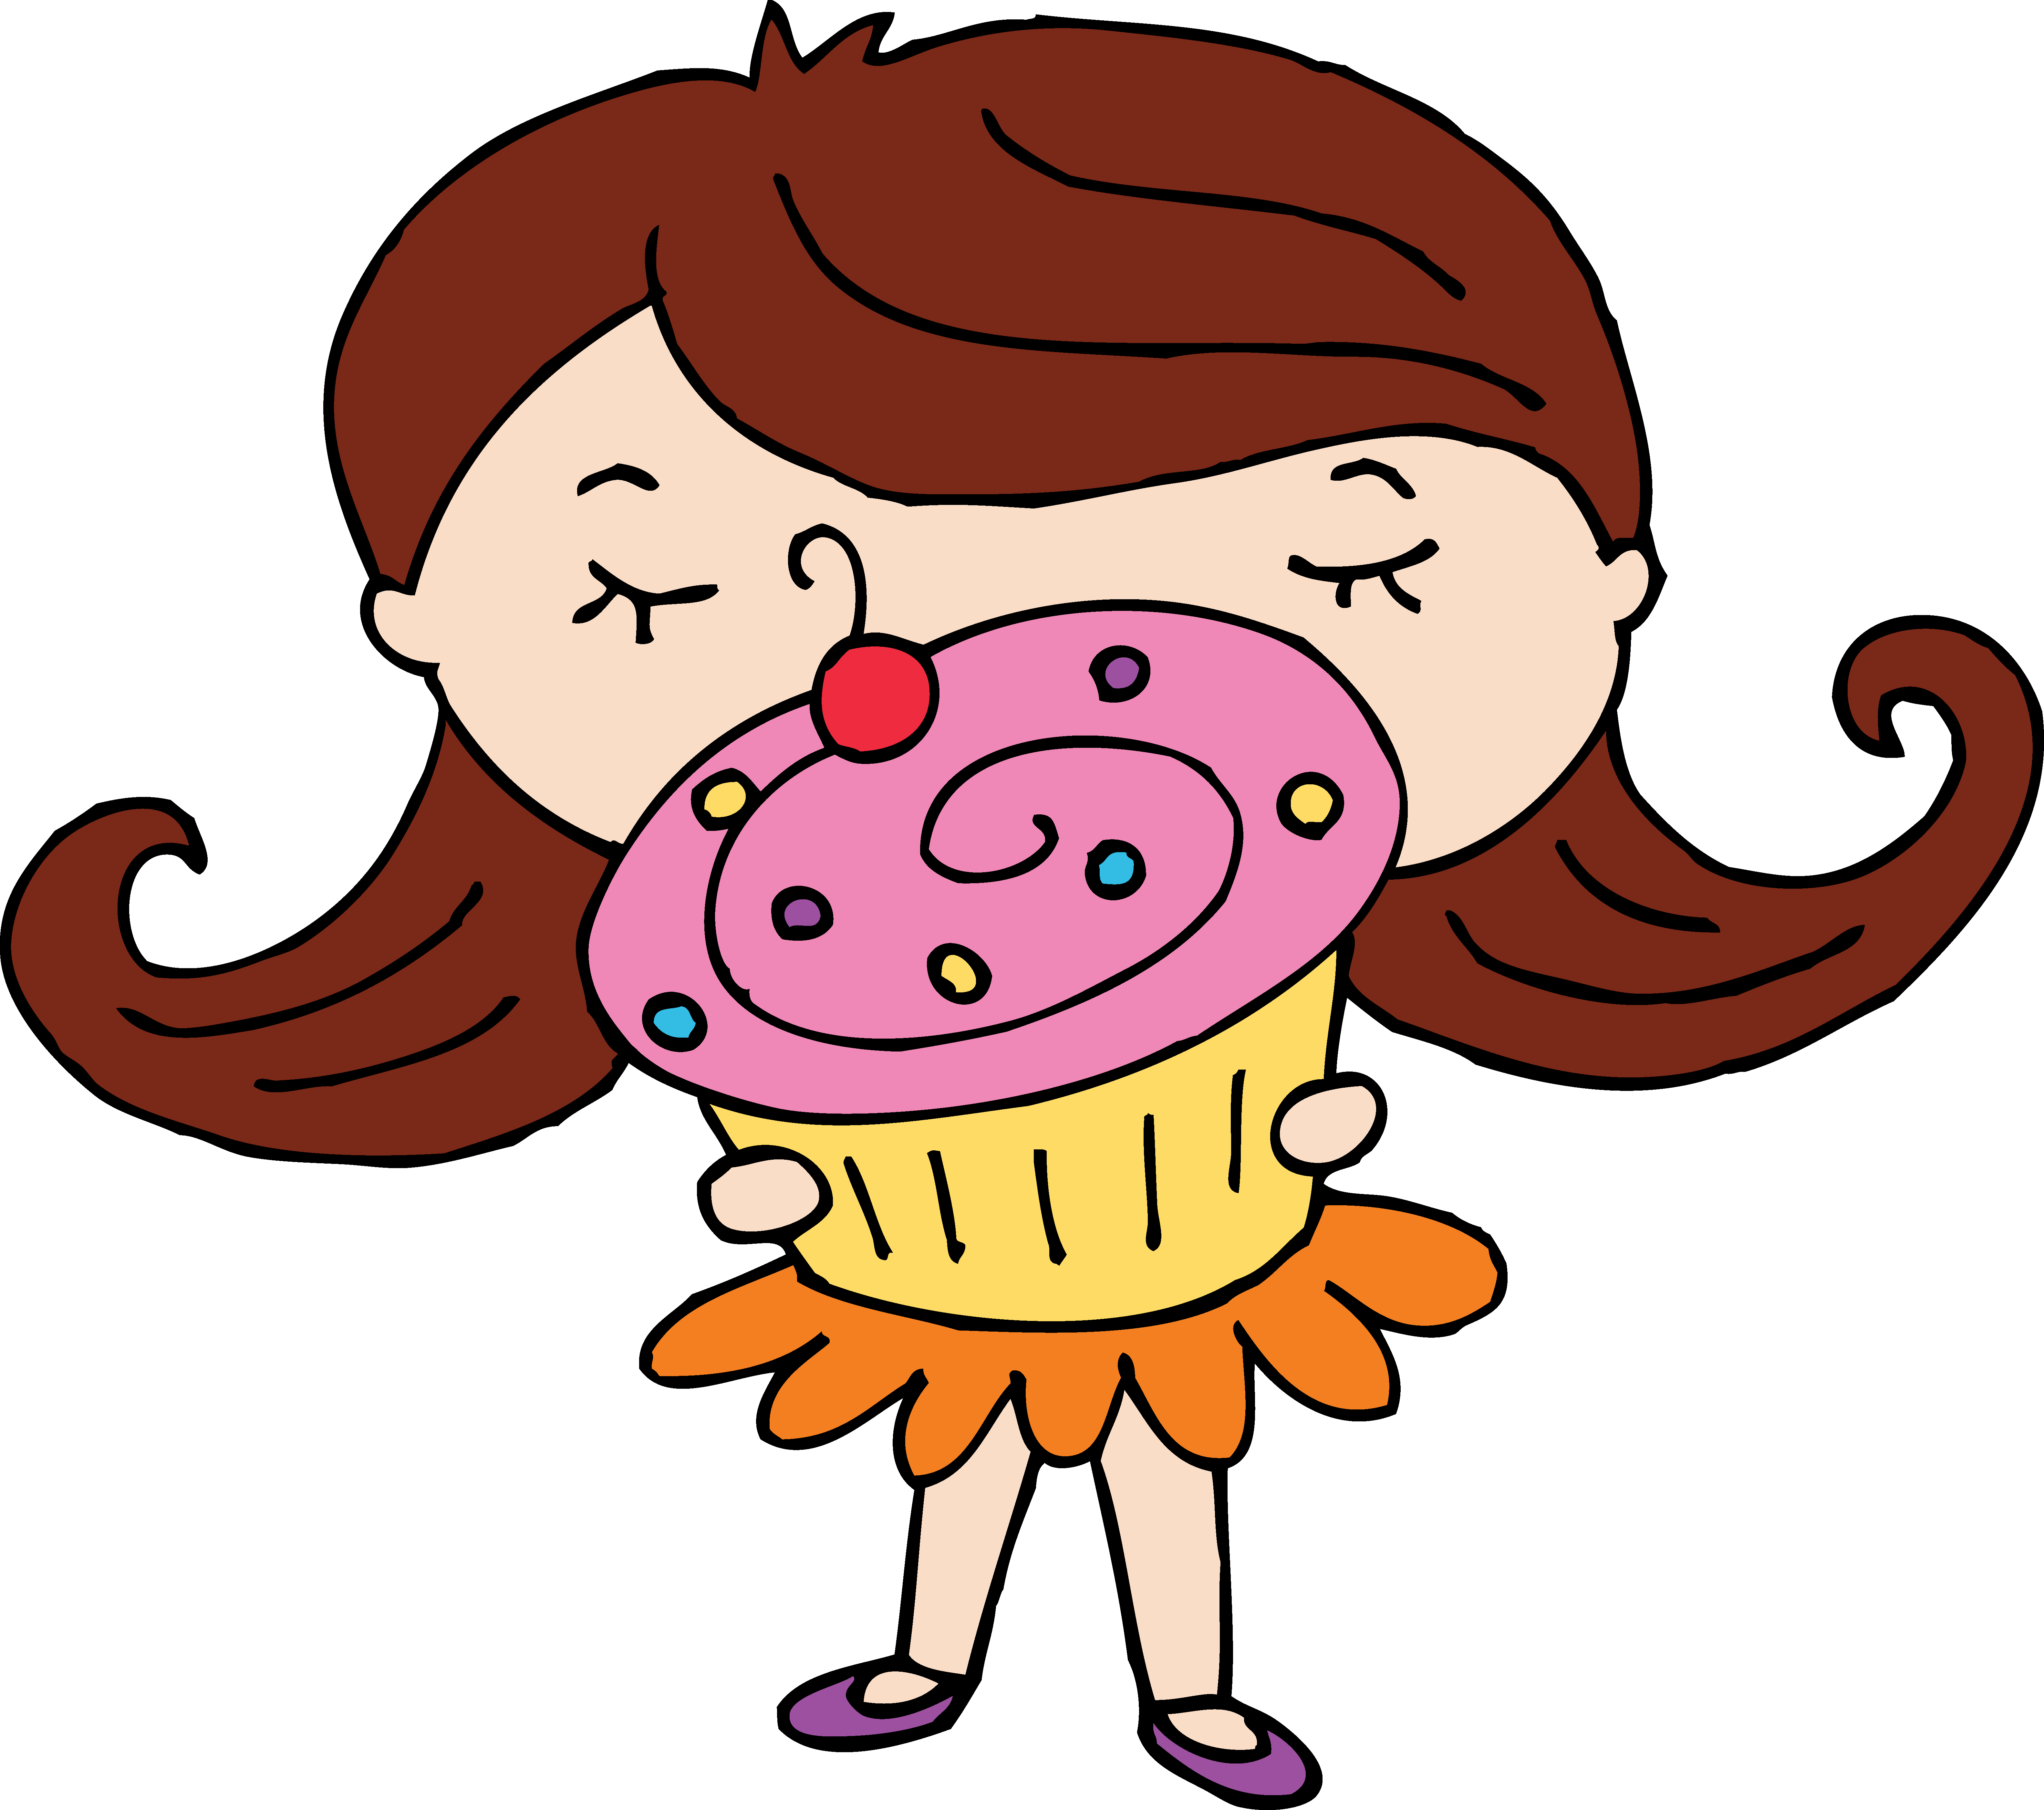 Cup cake group girl. Muffin clipart adorable